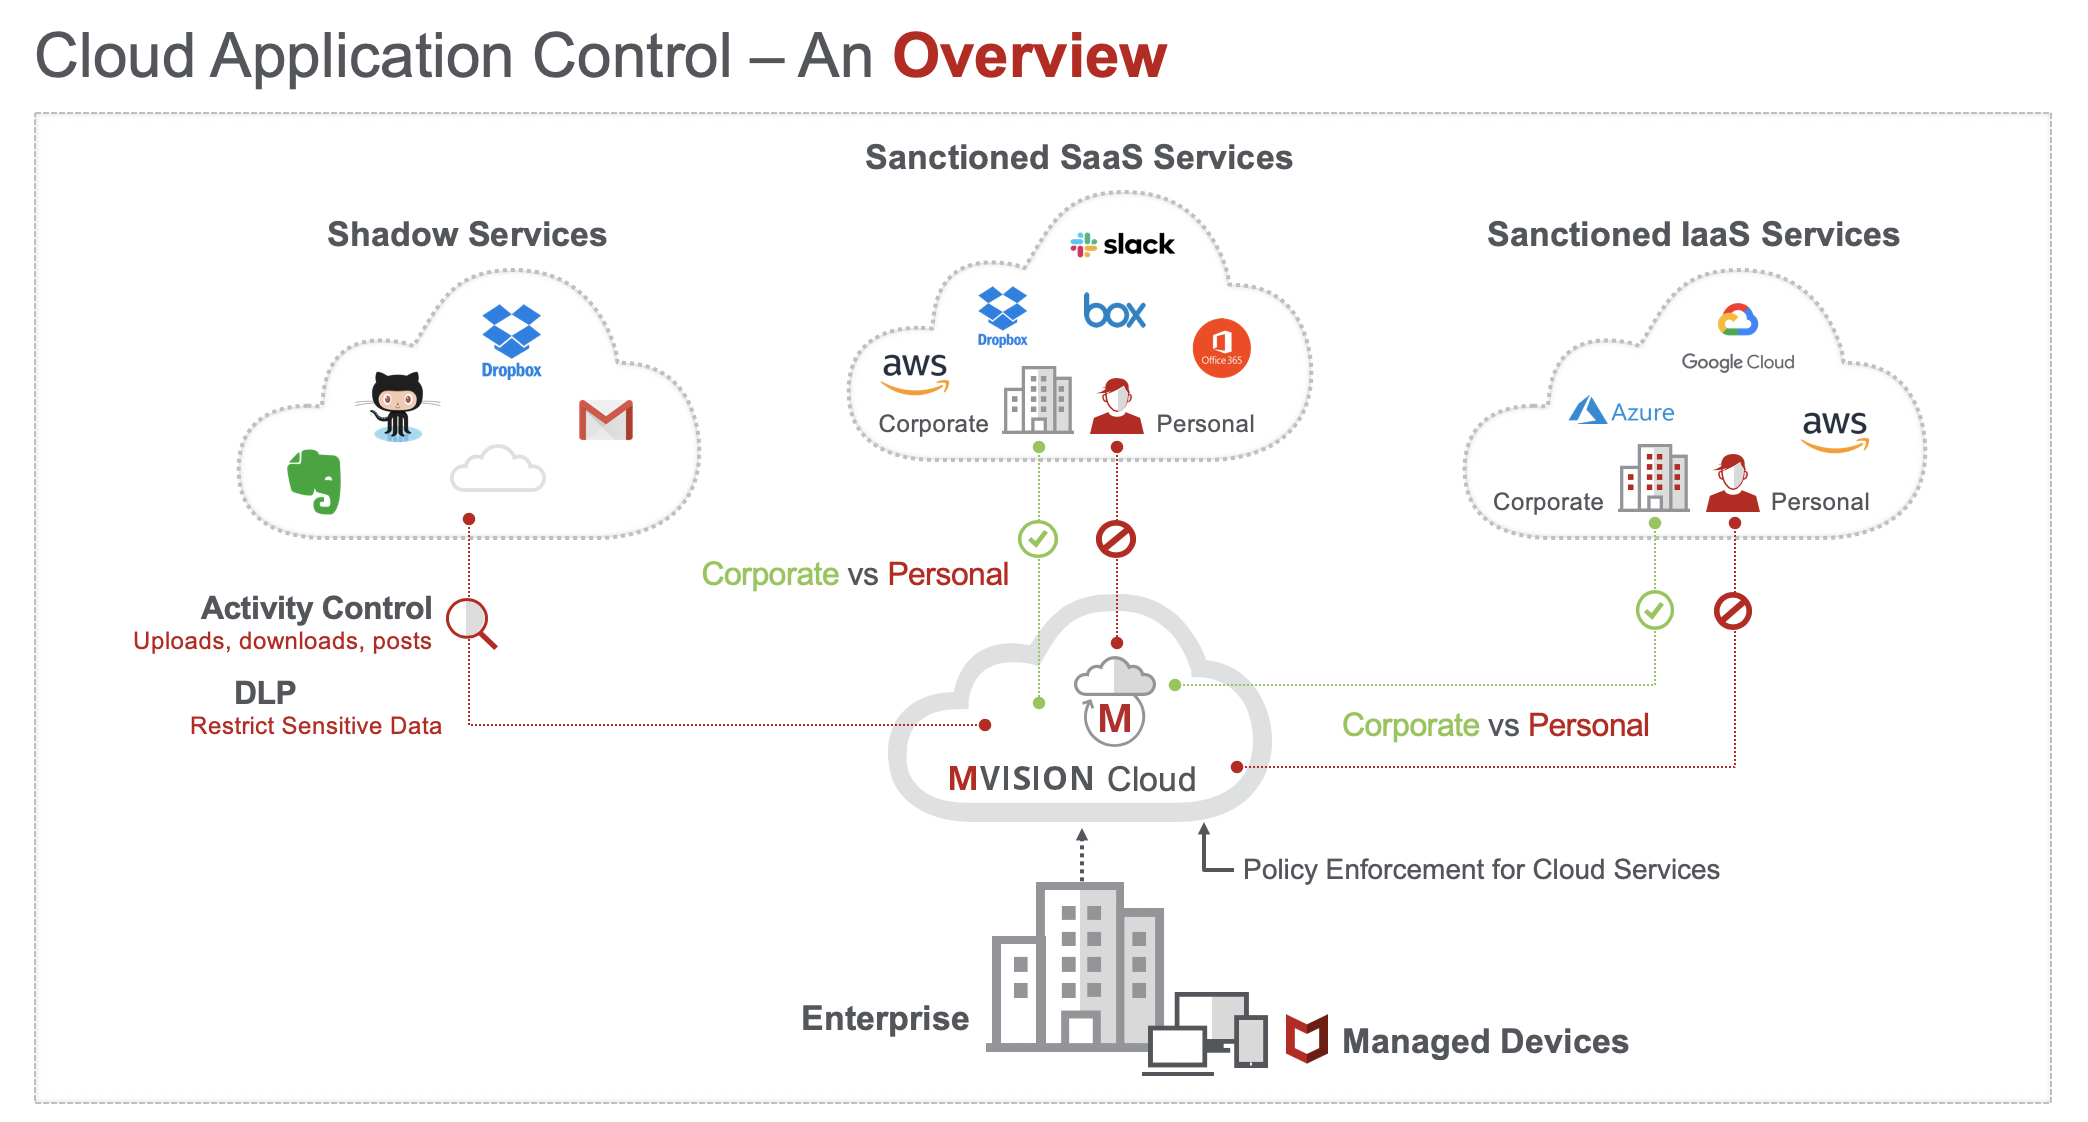 Cloud Application Control Overview